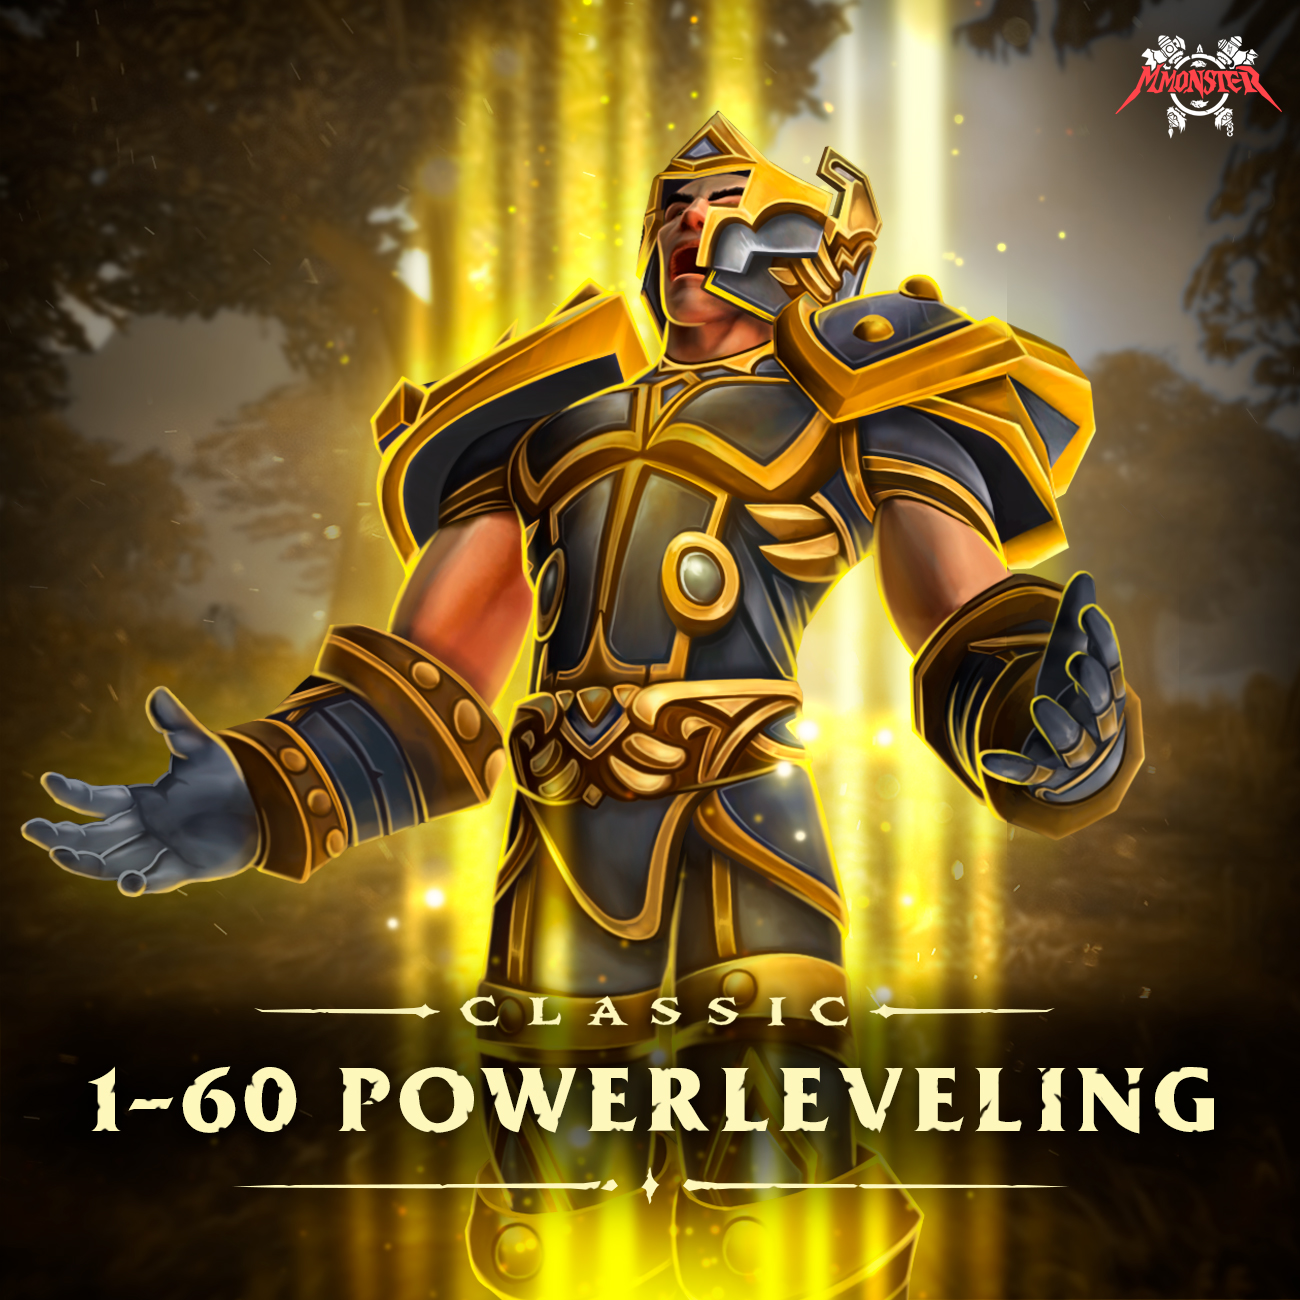 WoW Classic 1-60 Power Leveling Boost